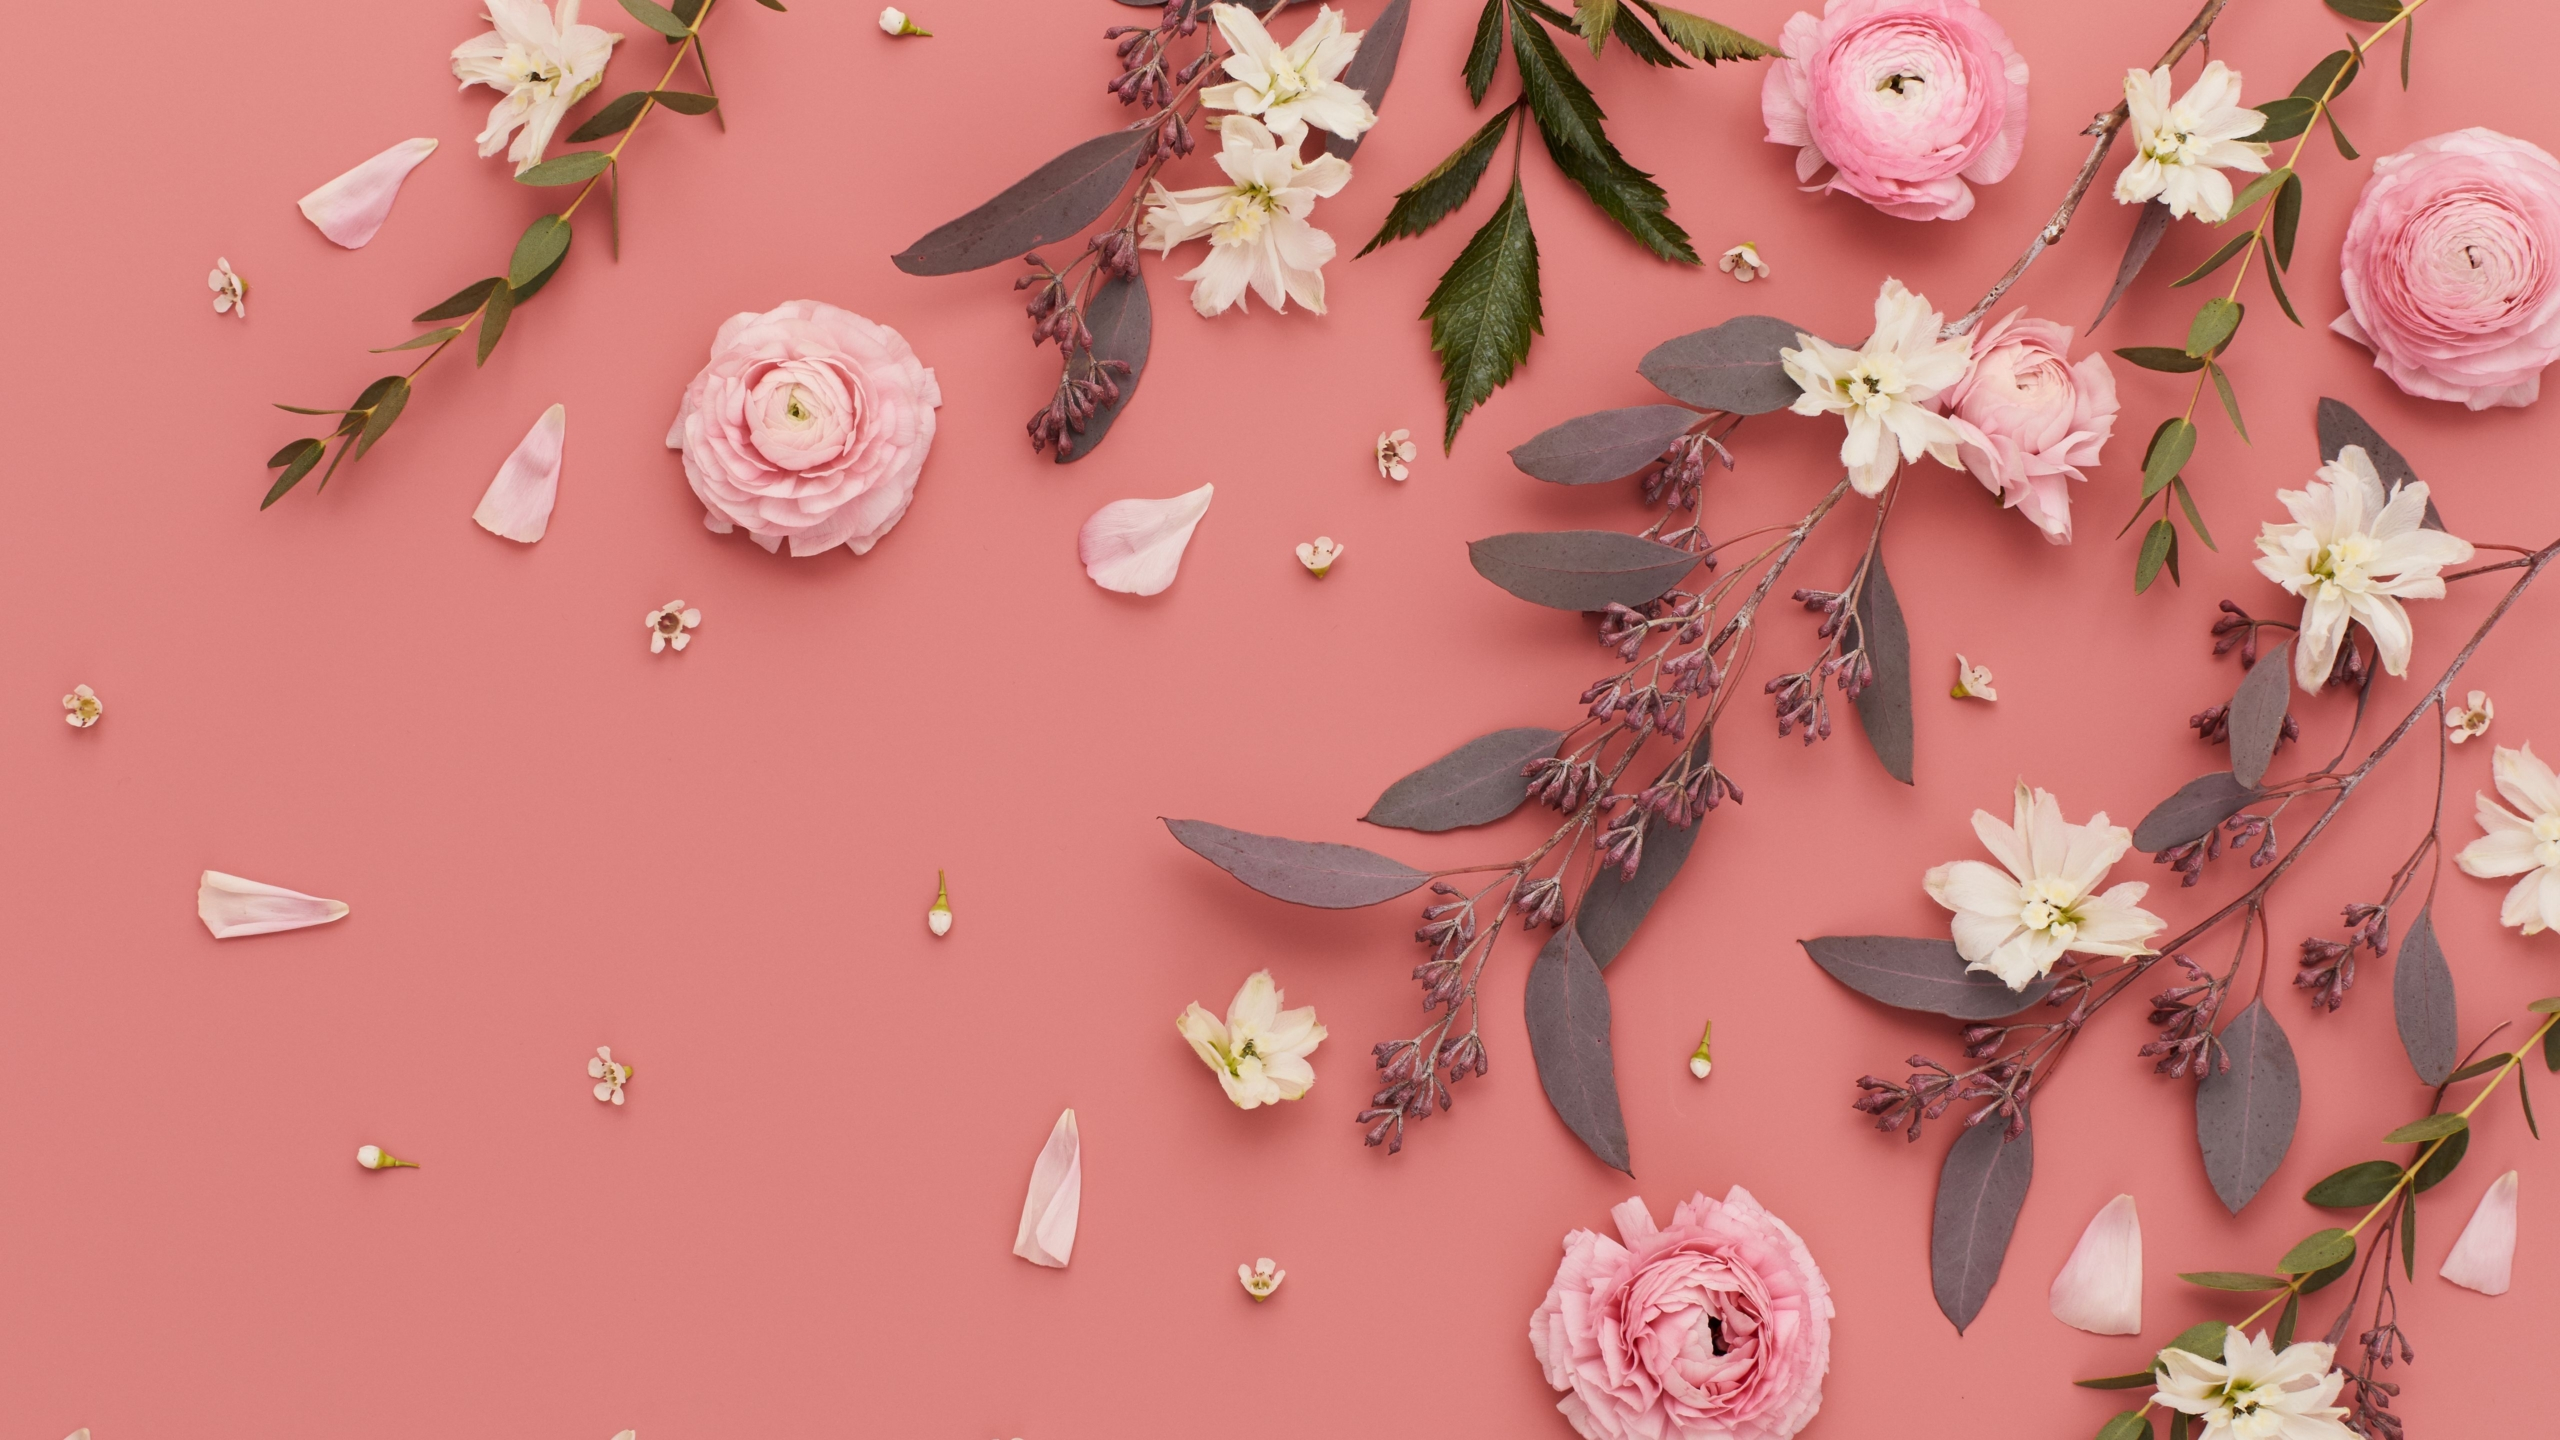 Pink Desktop Picture design Ideas – Why Use Pink wallpaper?